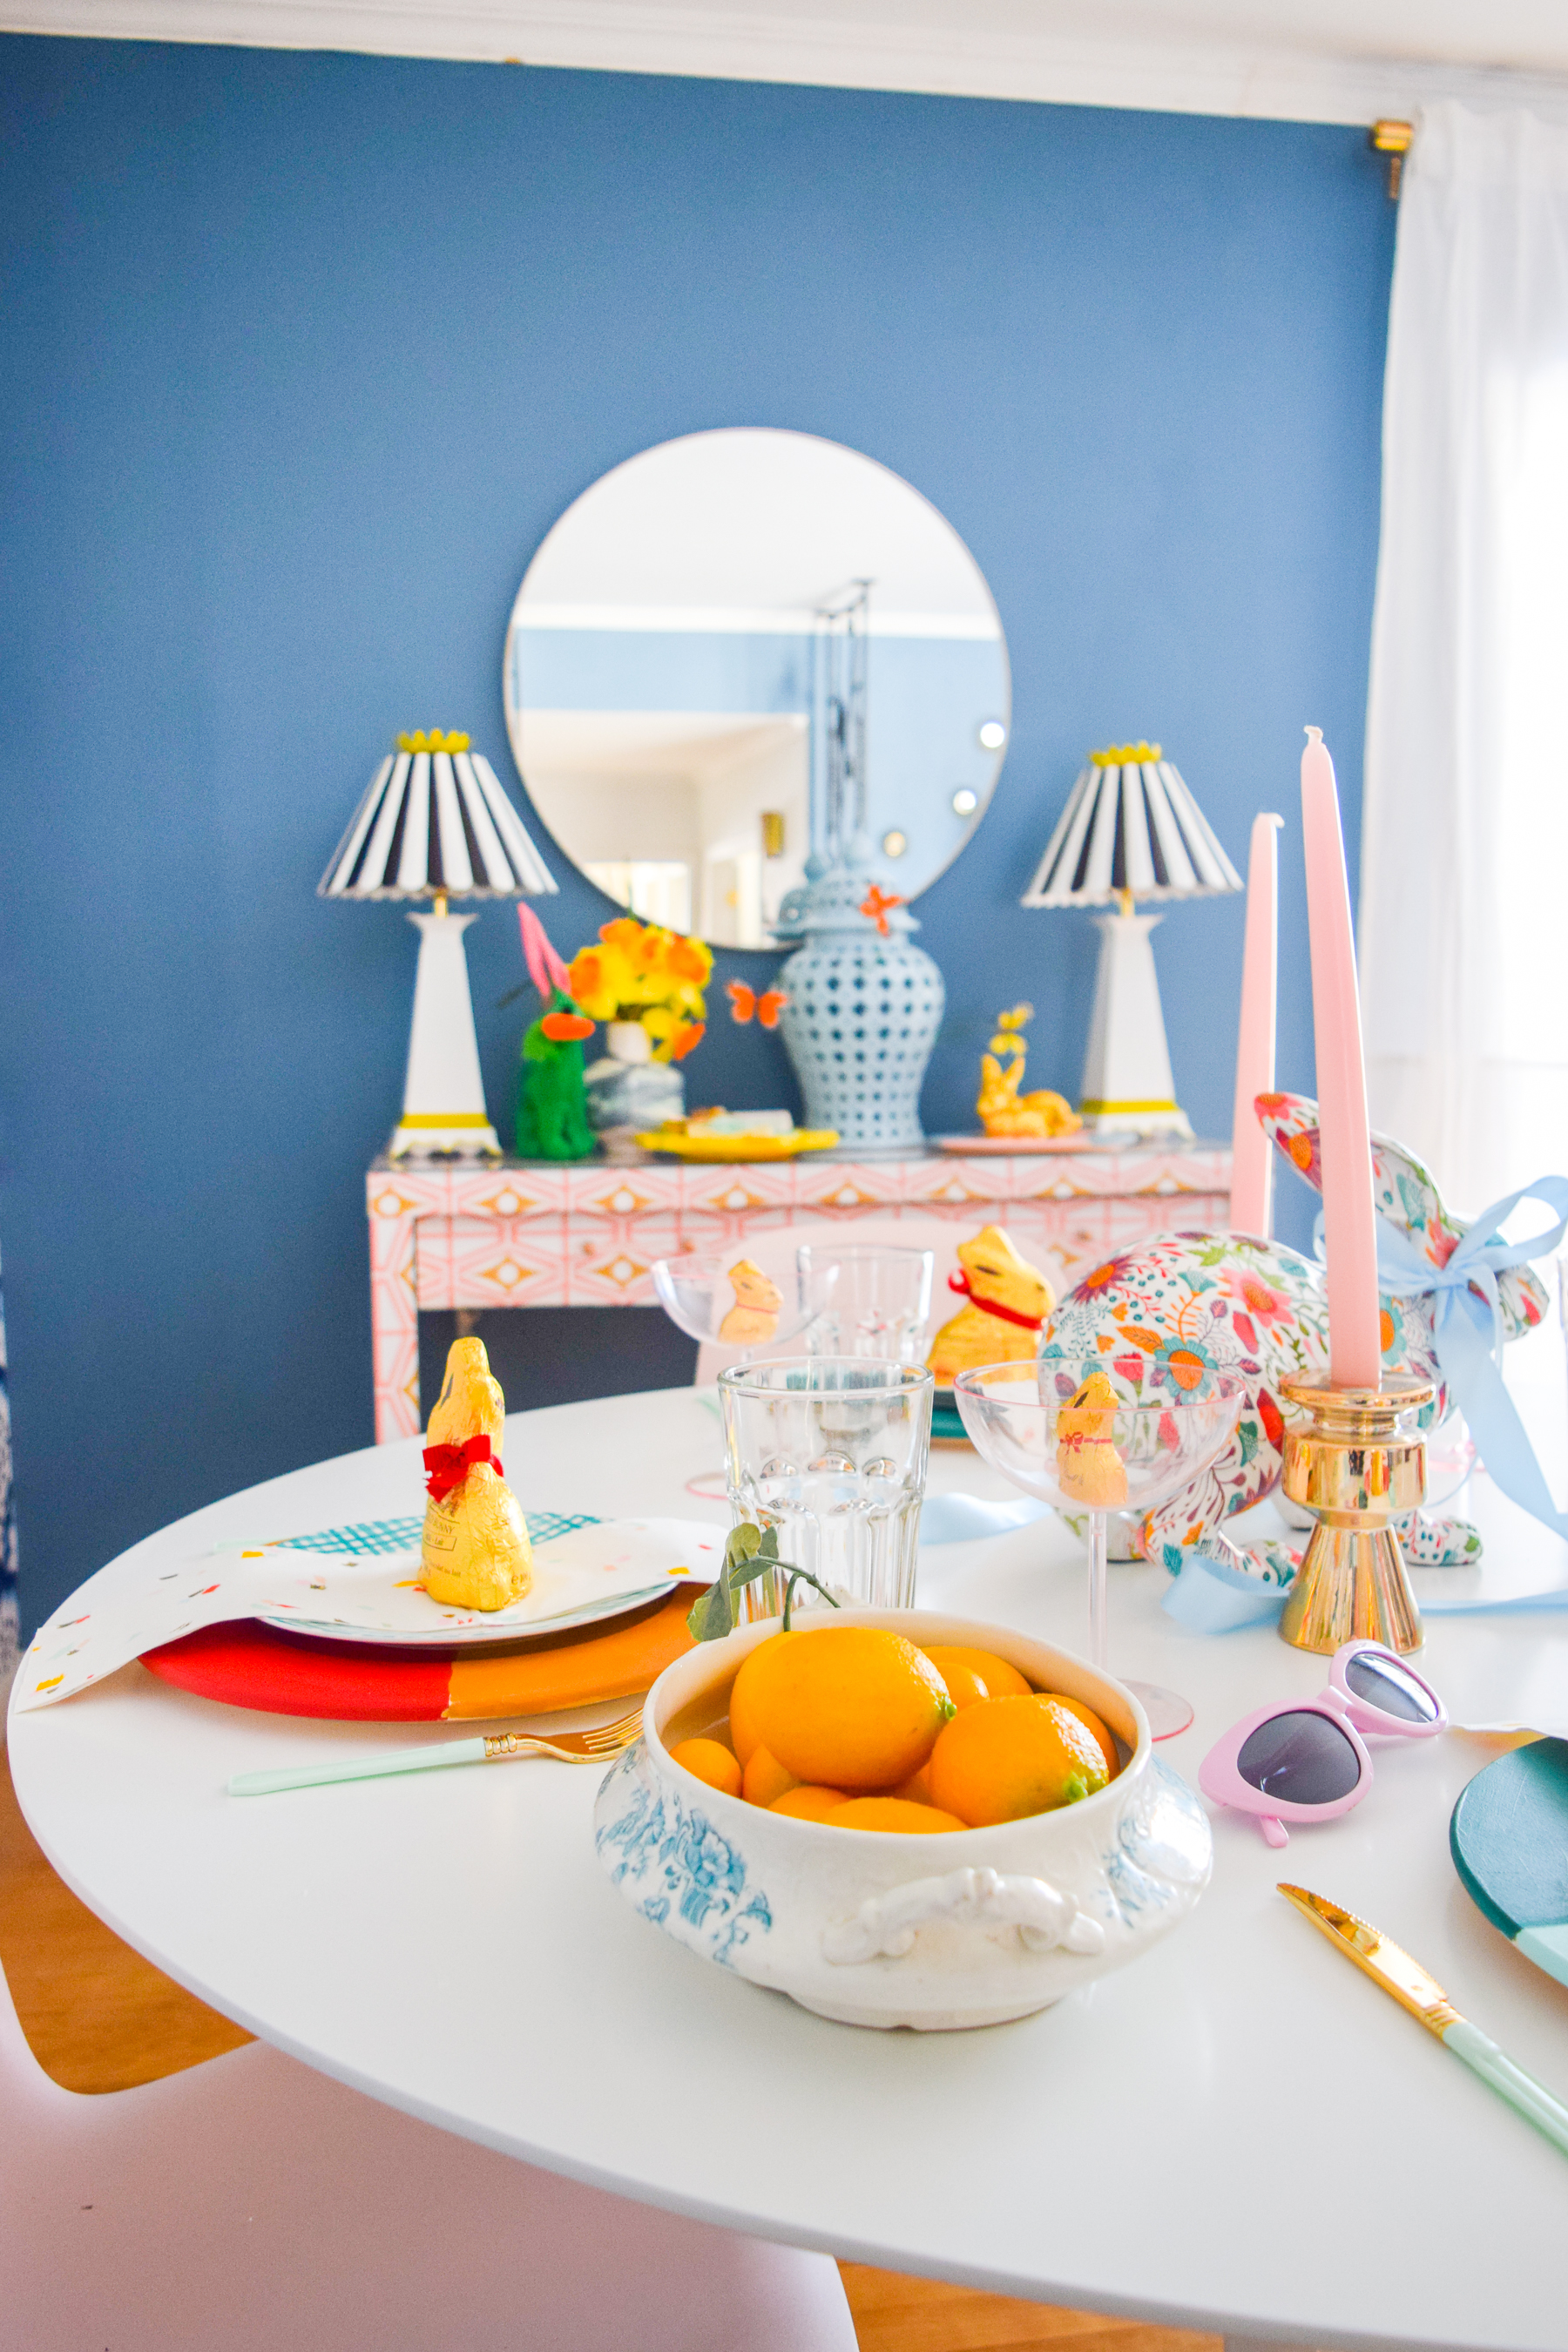 colourful spring house decor can be as simple as bows and flowers, with a dash of sunshine. Come see how I'm ushering-in spring in style.